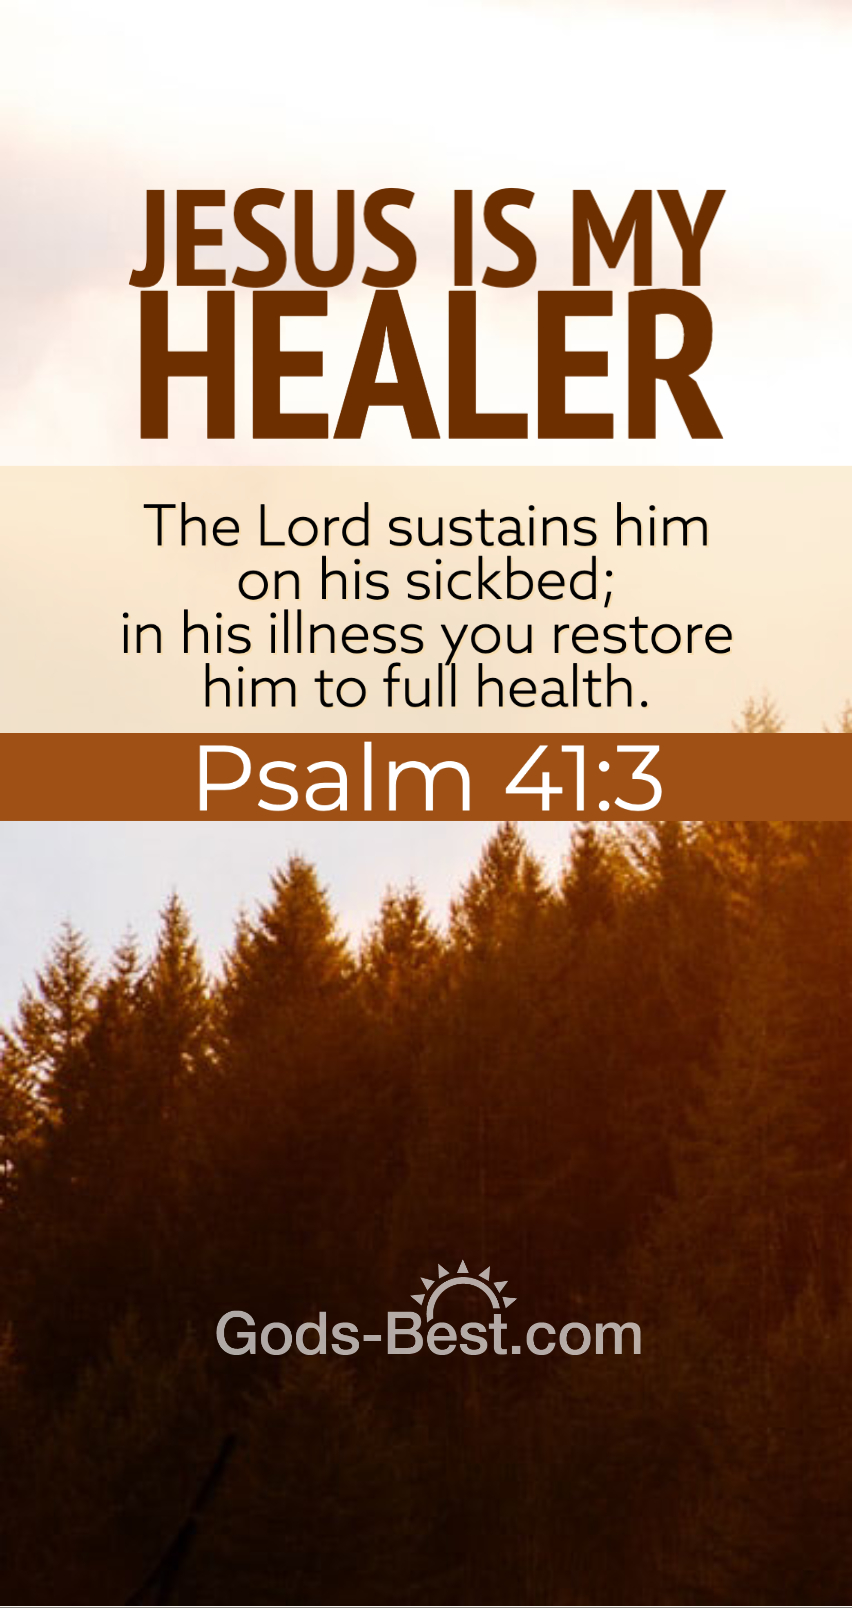 Jesus Is My Healer phone wallpaper